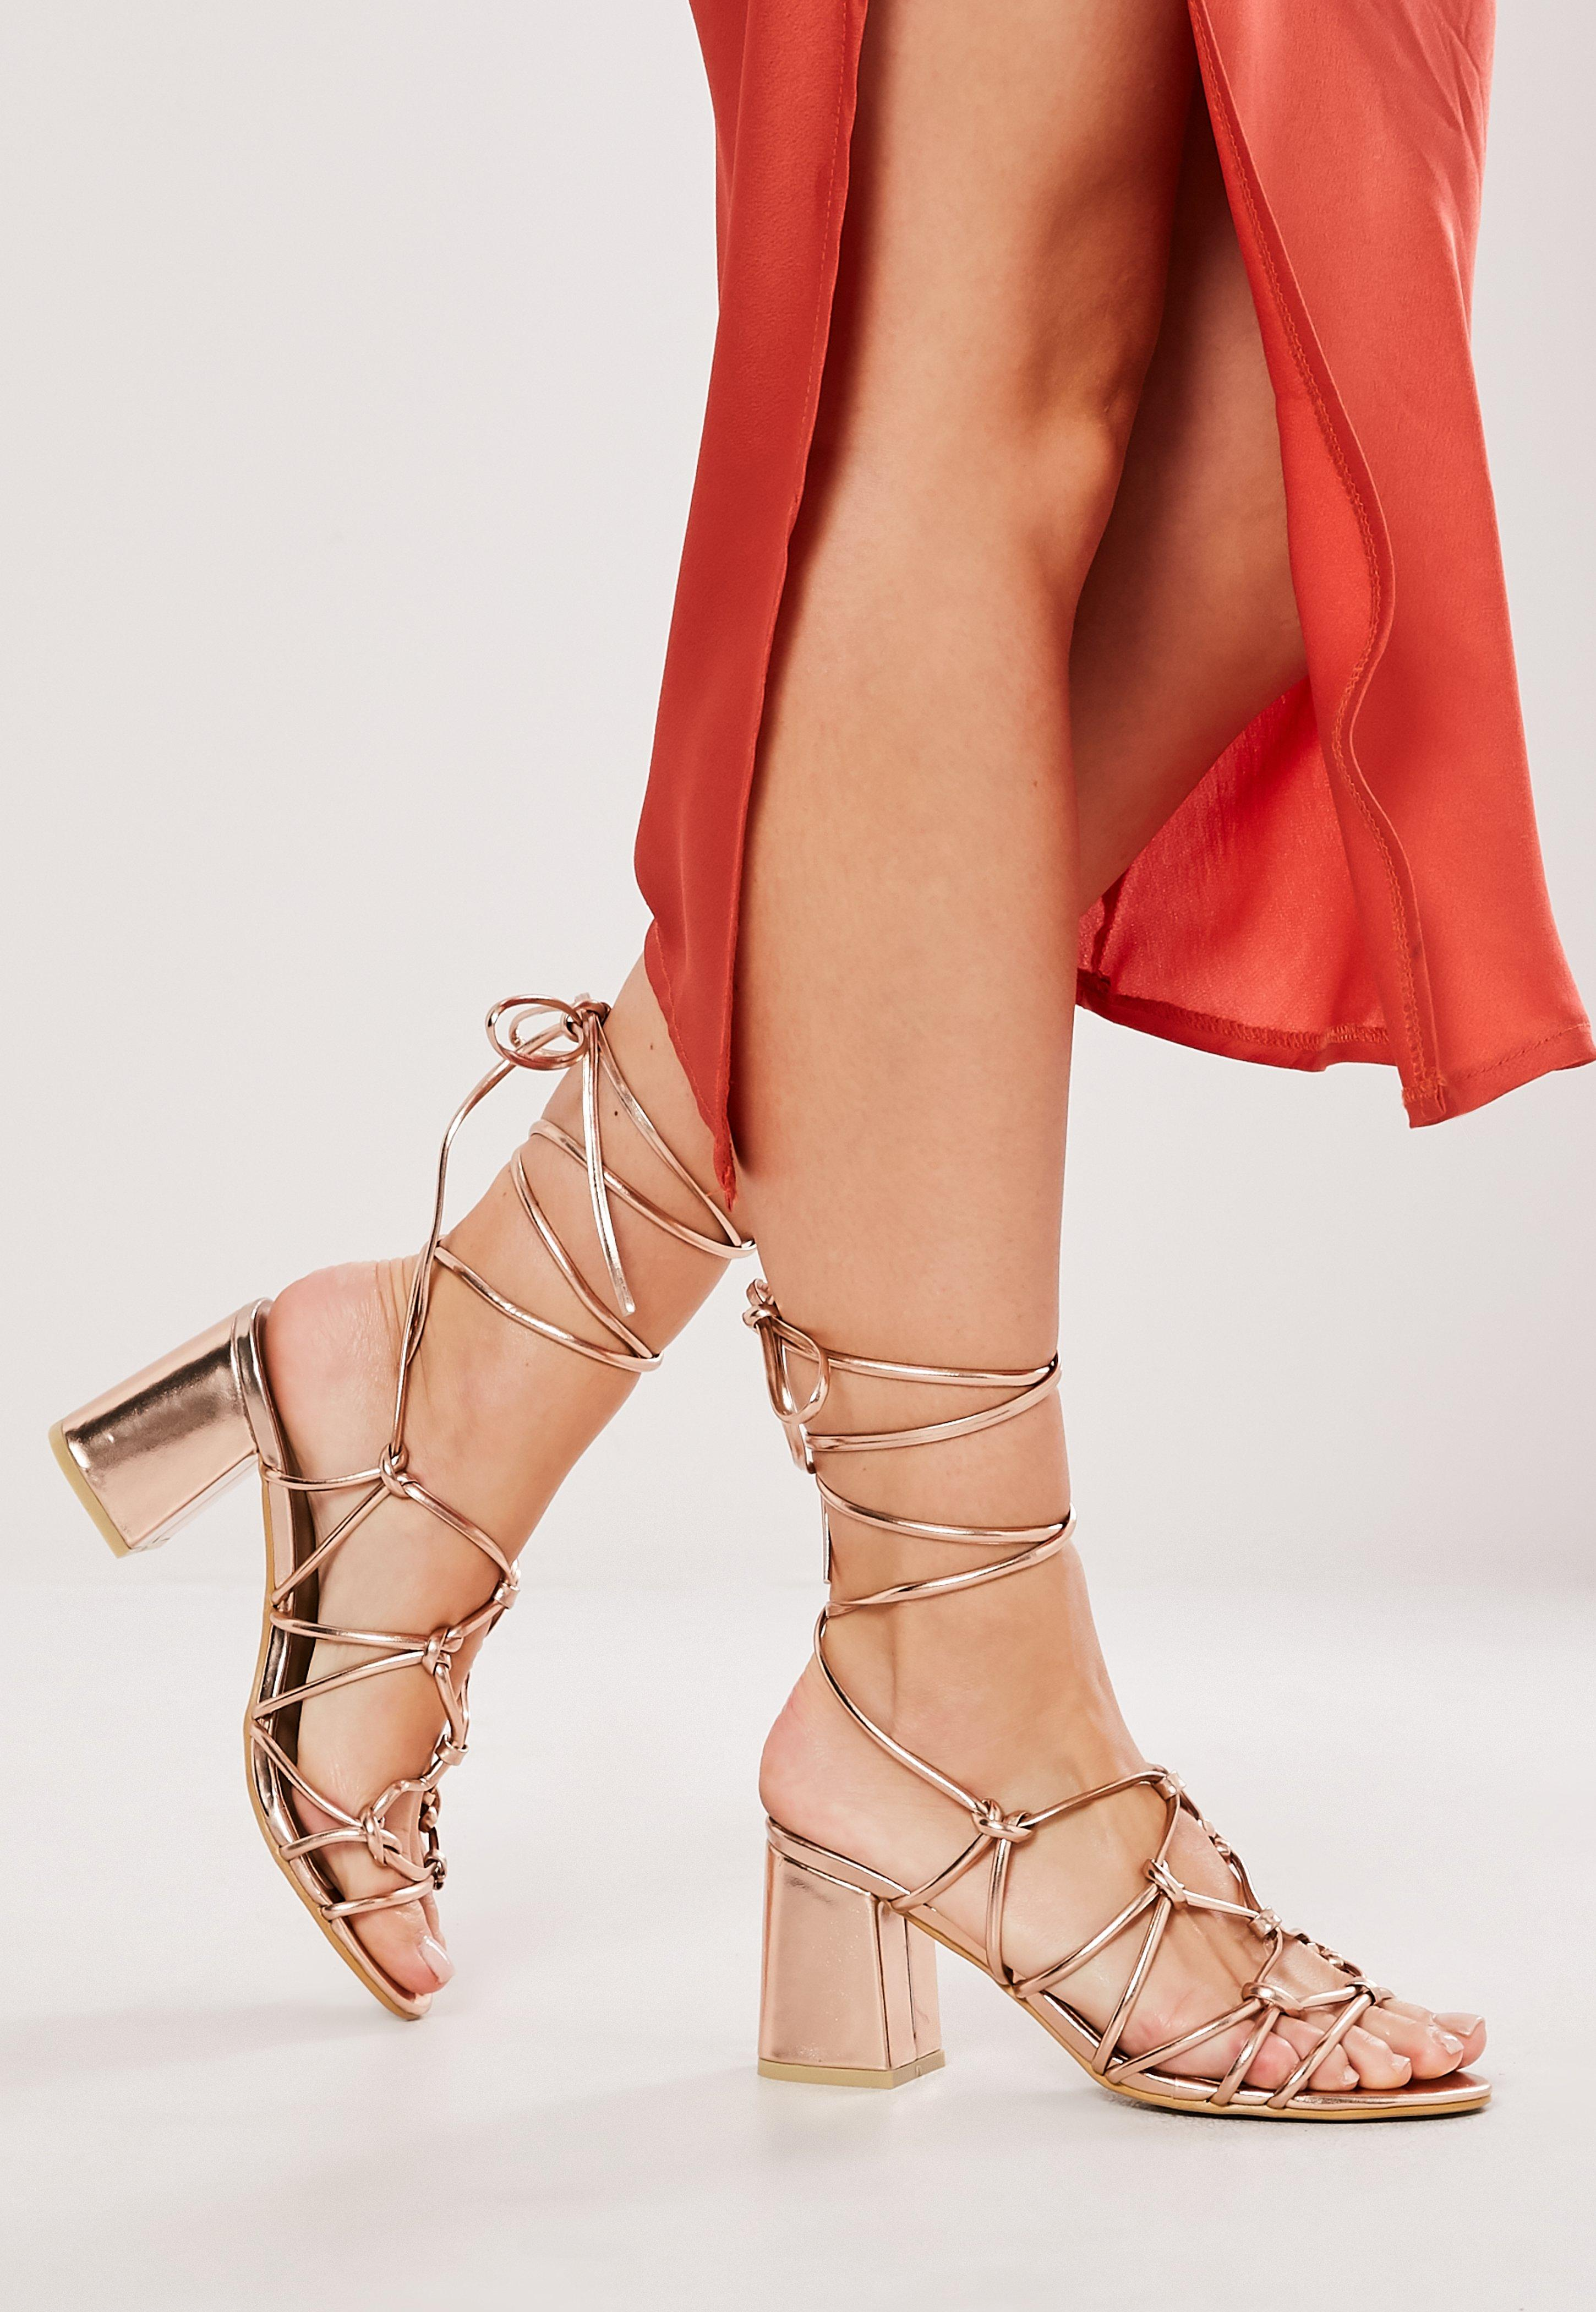 30a62aef377 Lace Up Heels